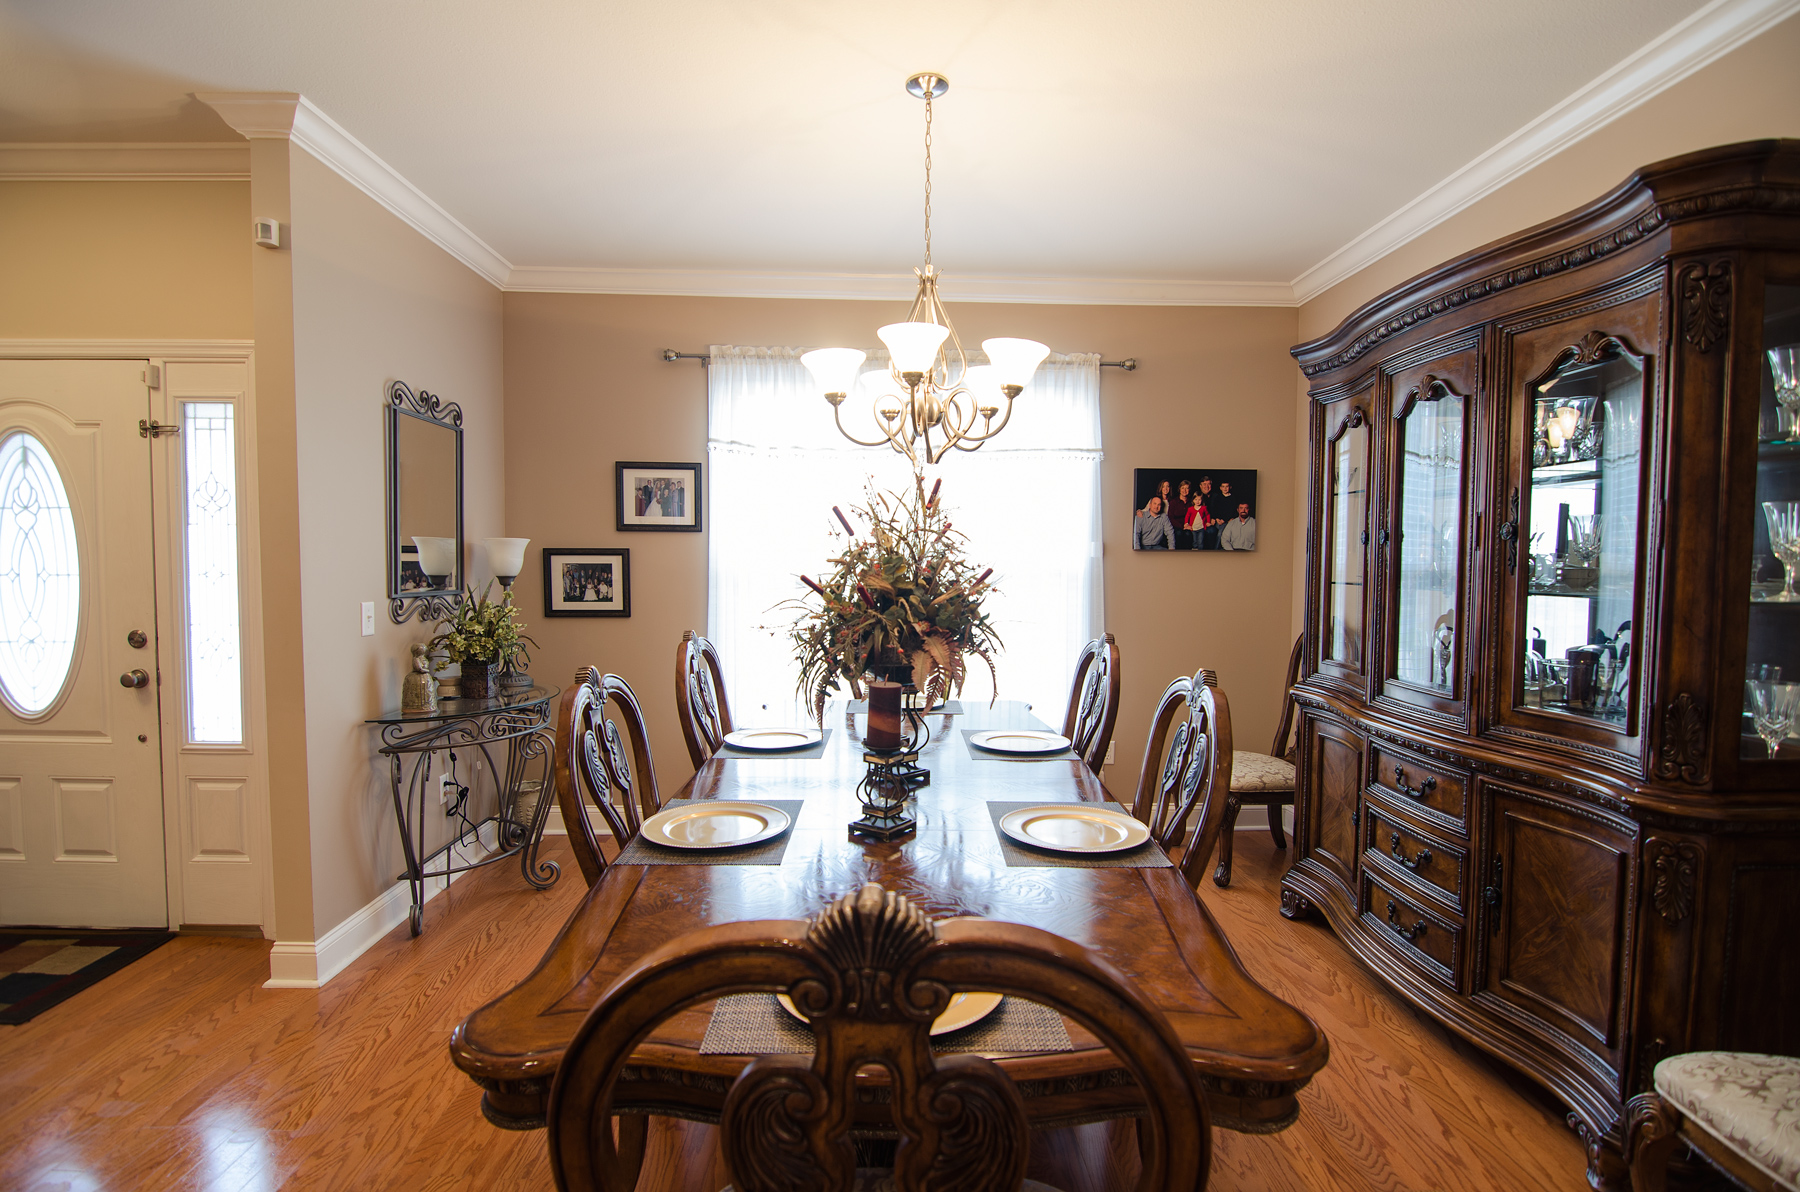 3riversrealty-diningroom2.jpg